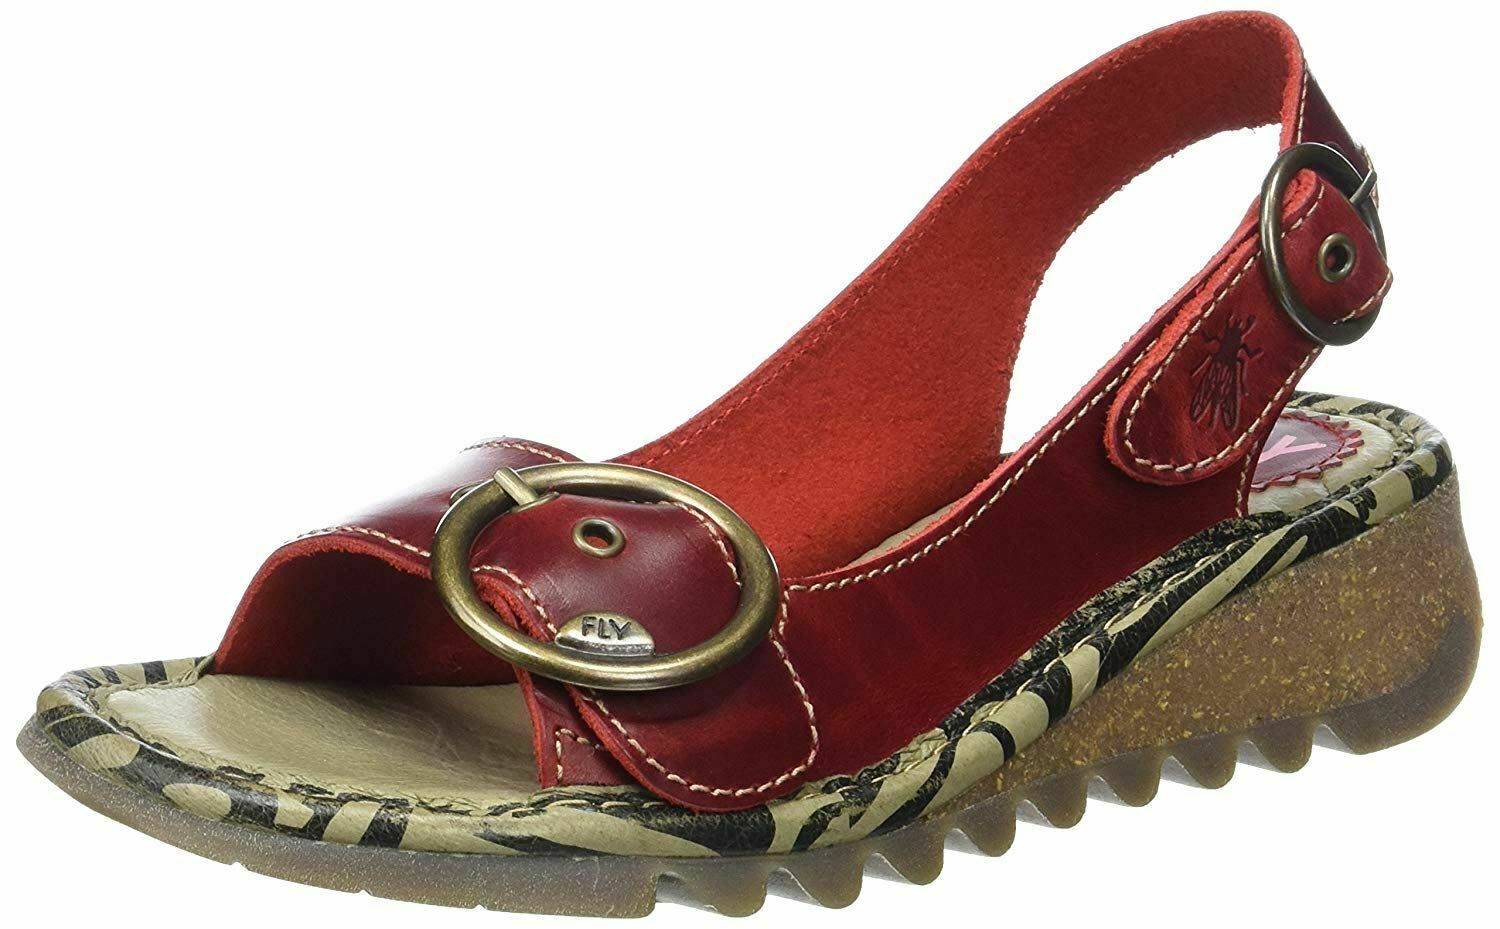 Fly London Tram Red Womens Leather Slingback Sandals shoes